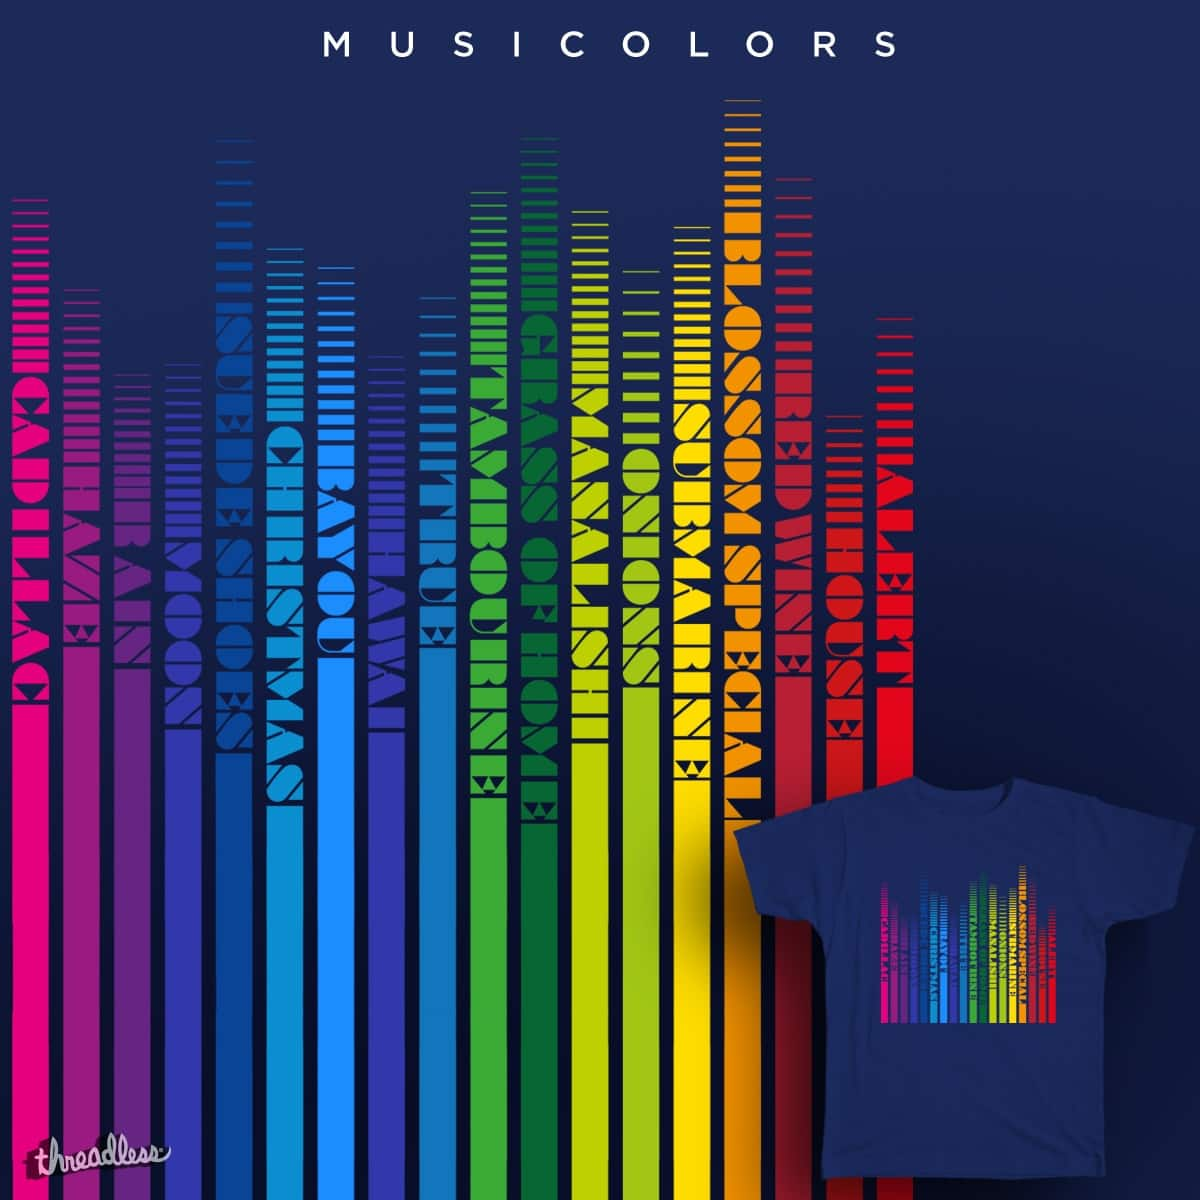 MUSICOLORS by selfish presley on Threadless